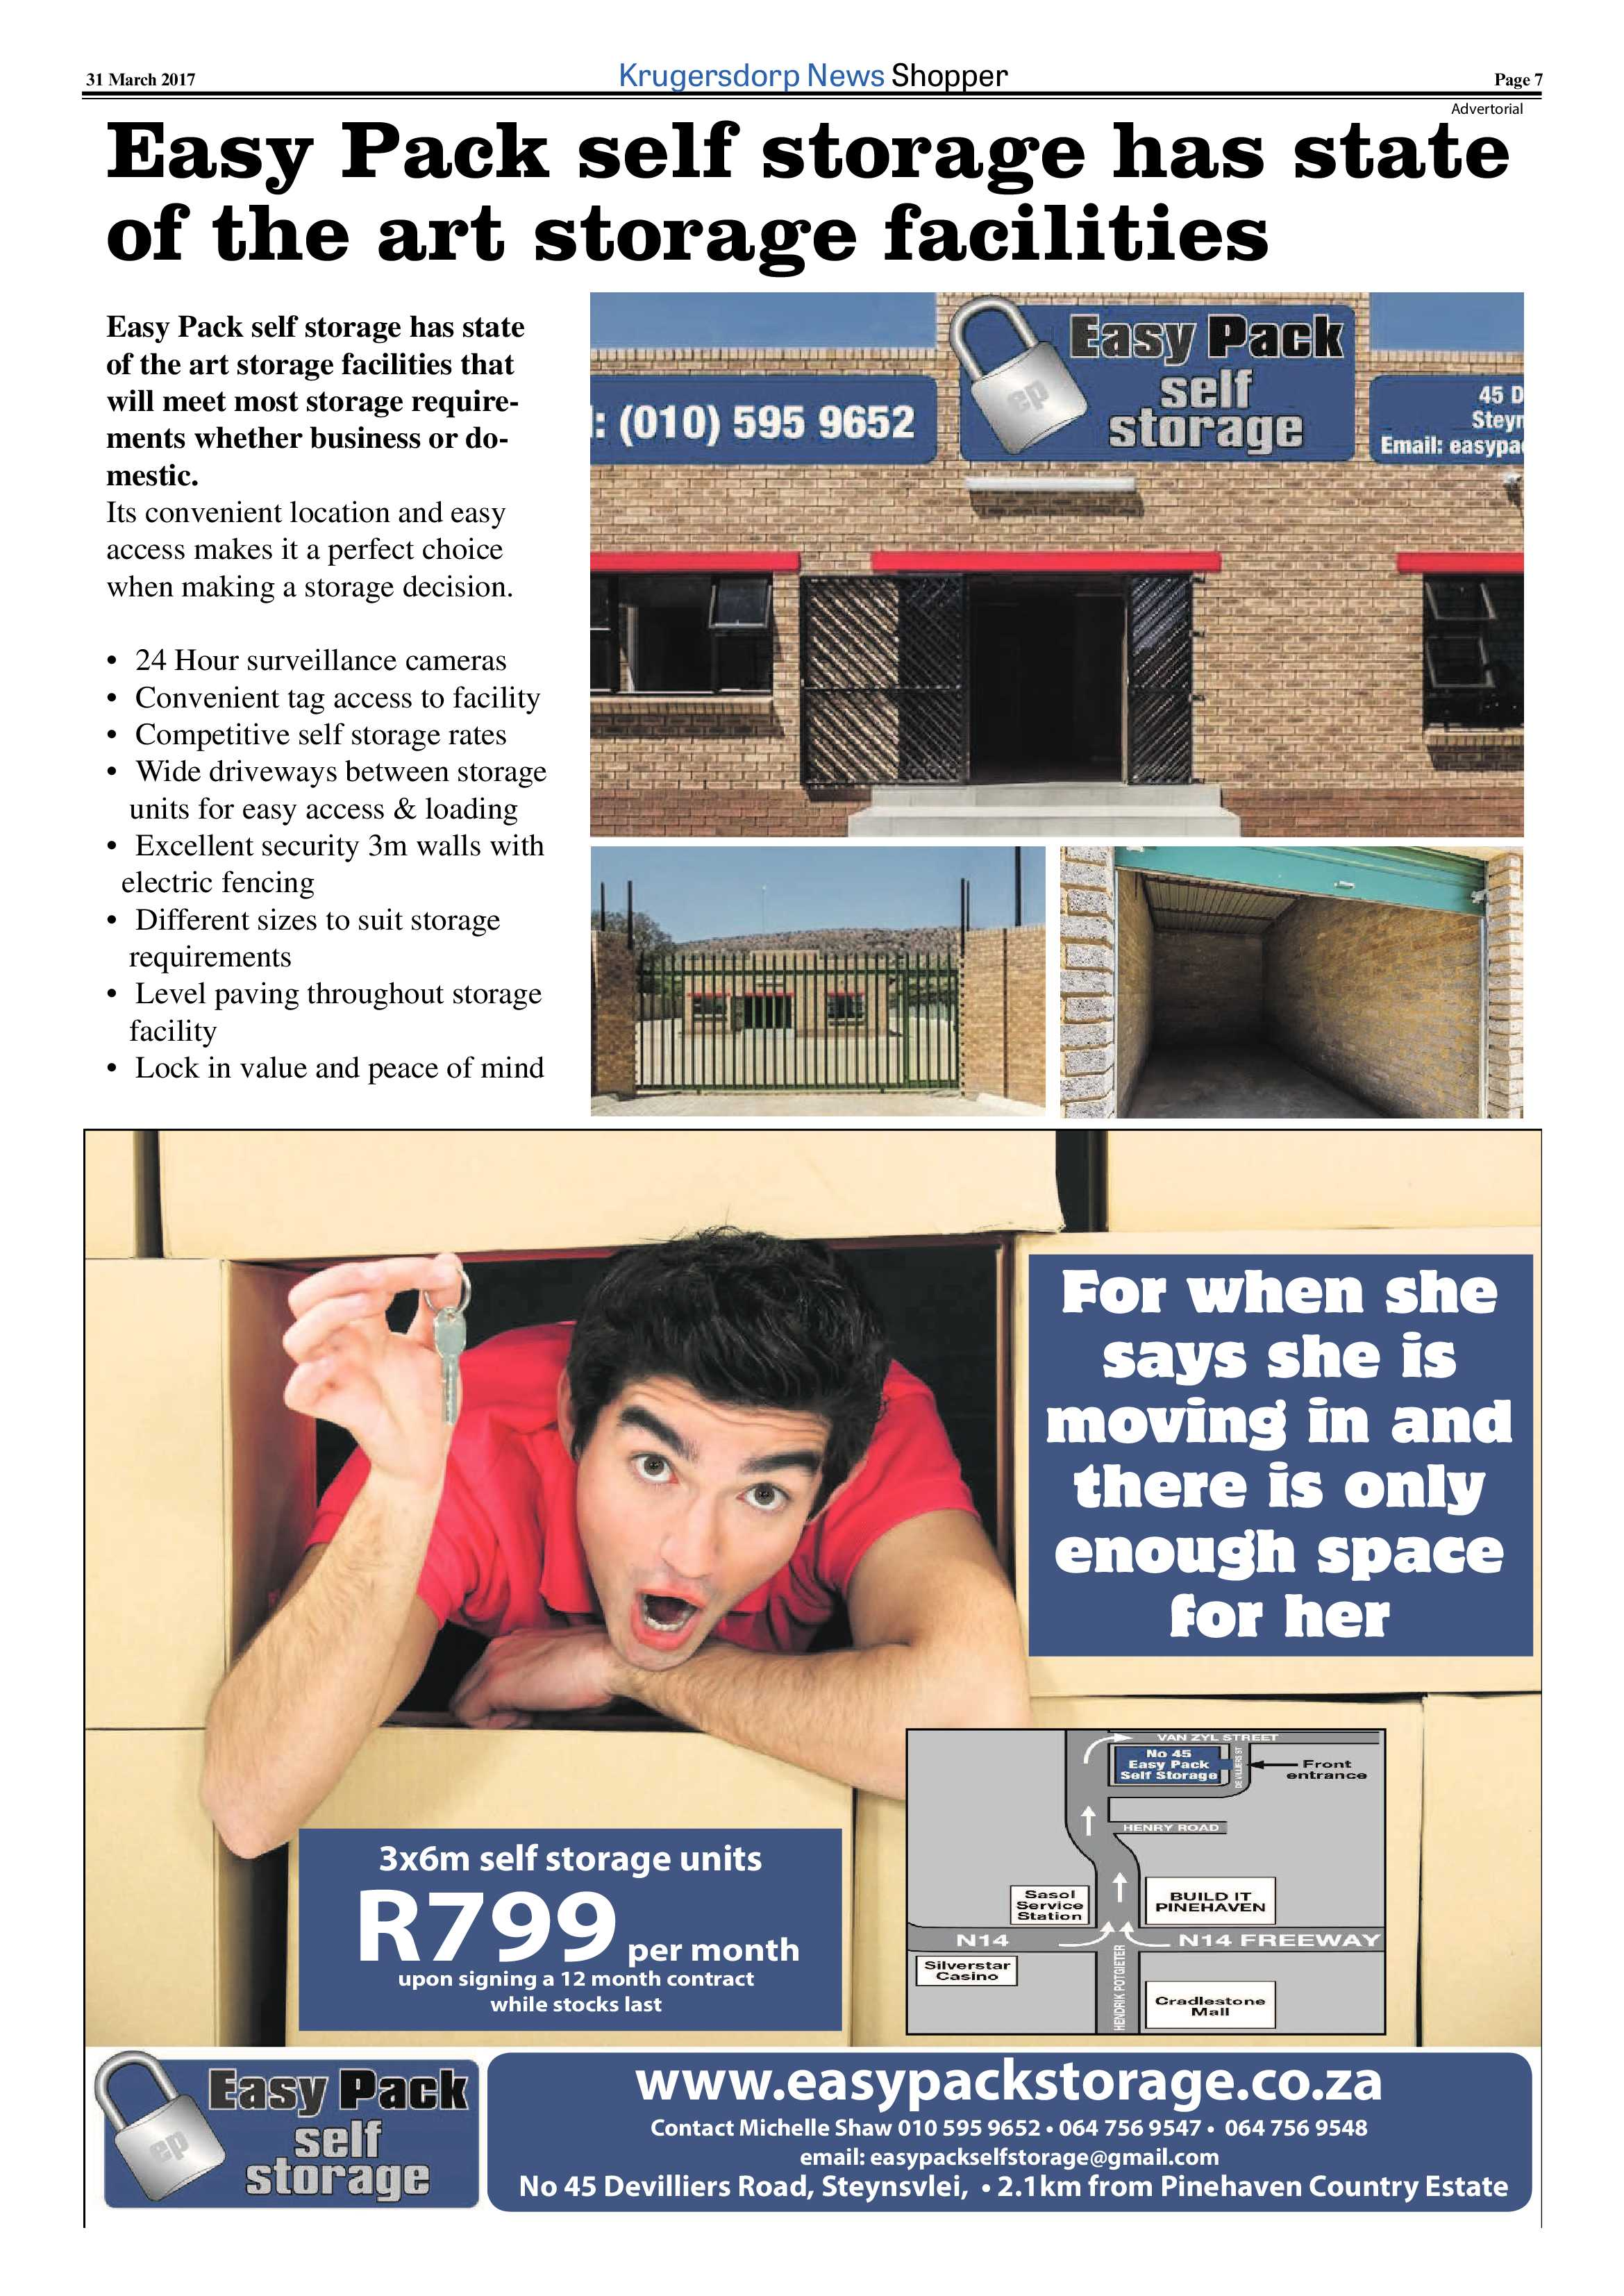 krugersdorp-news-shopper-march-2017-epapers-page-7